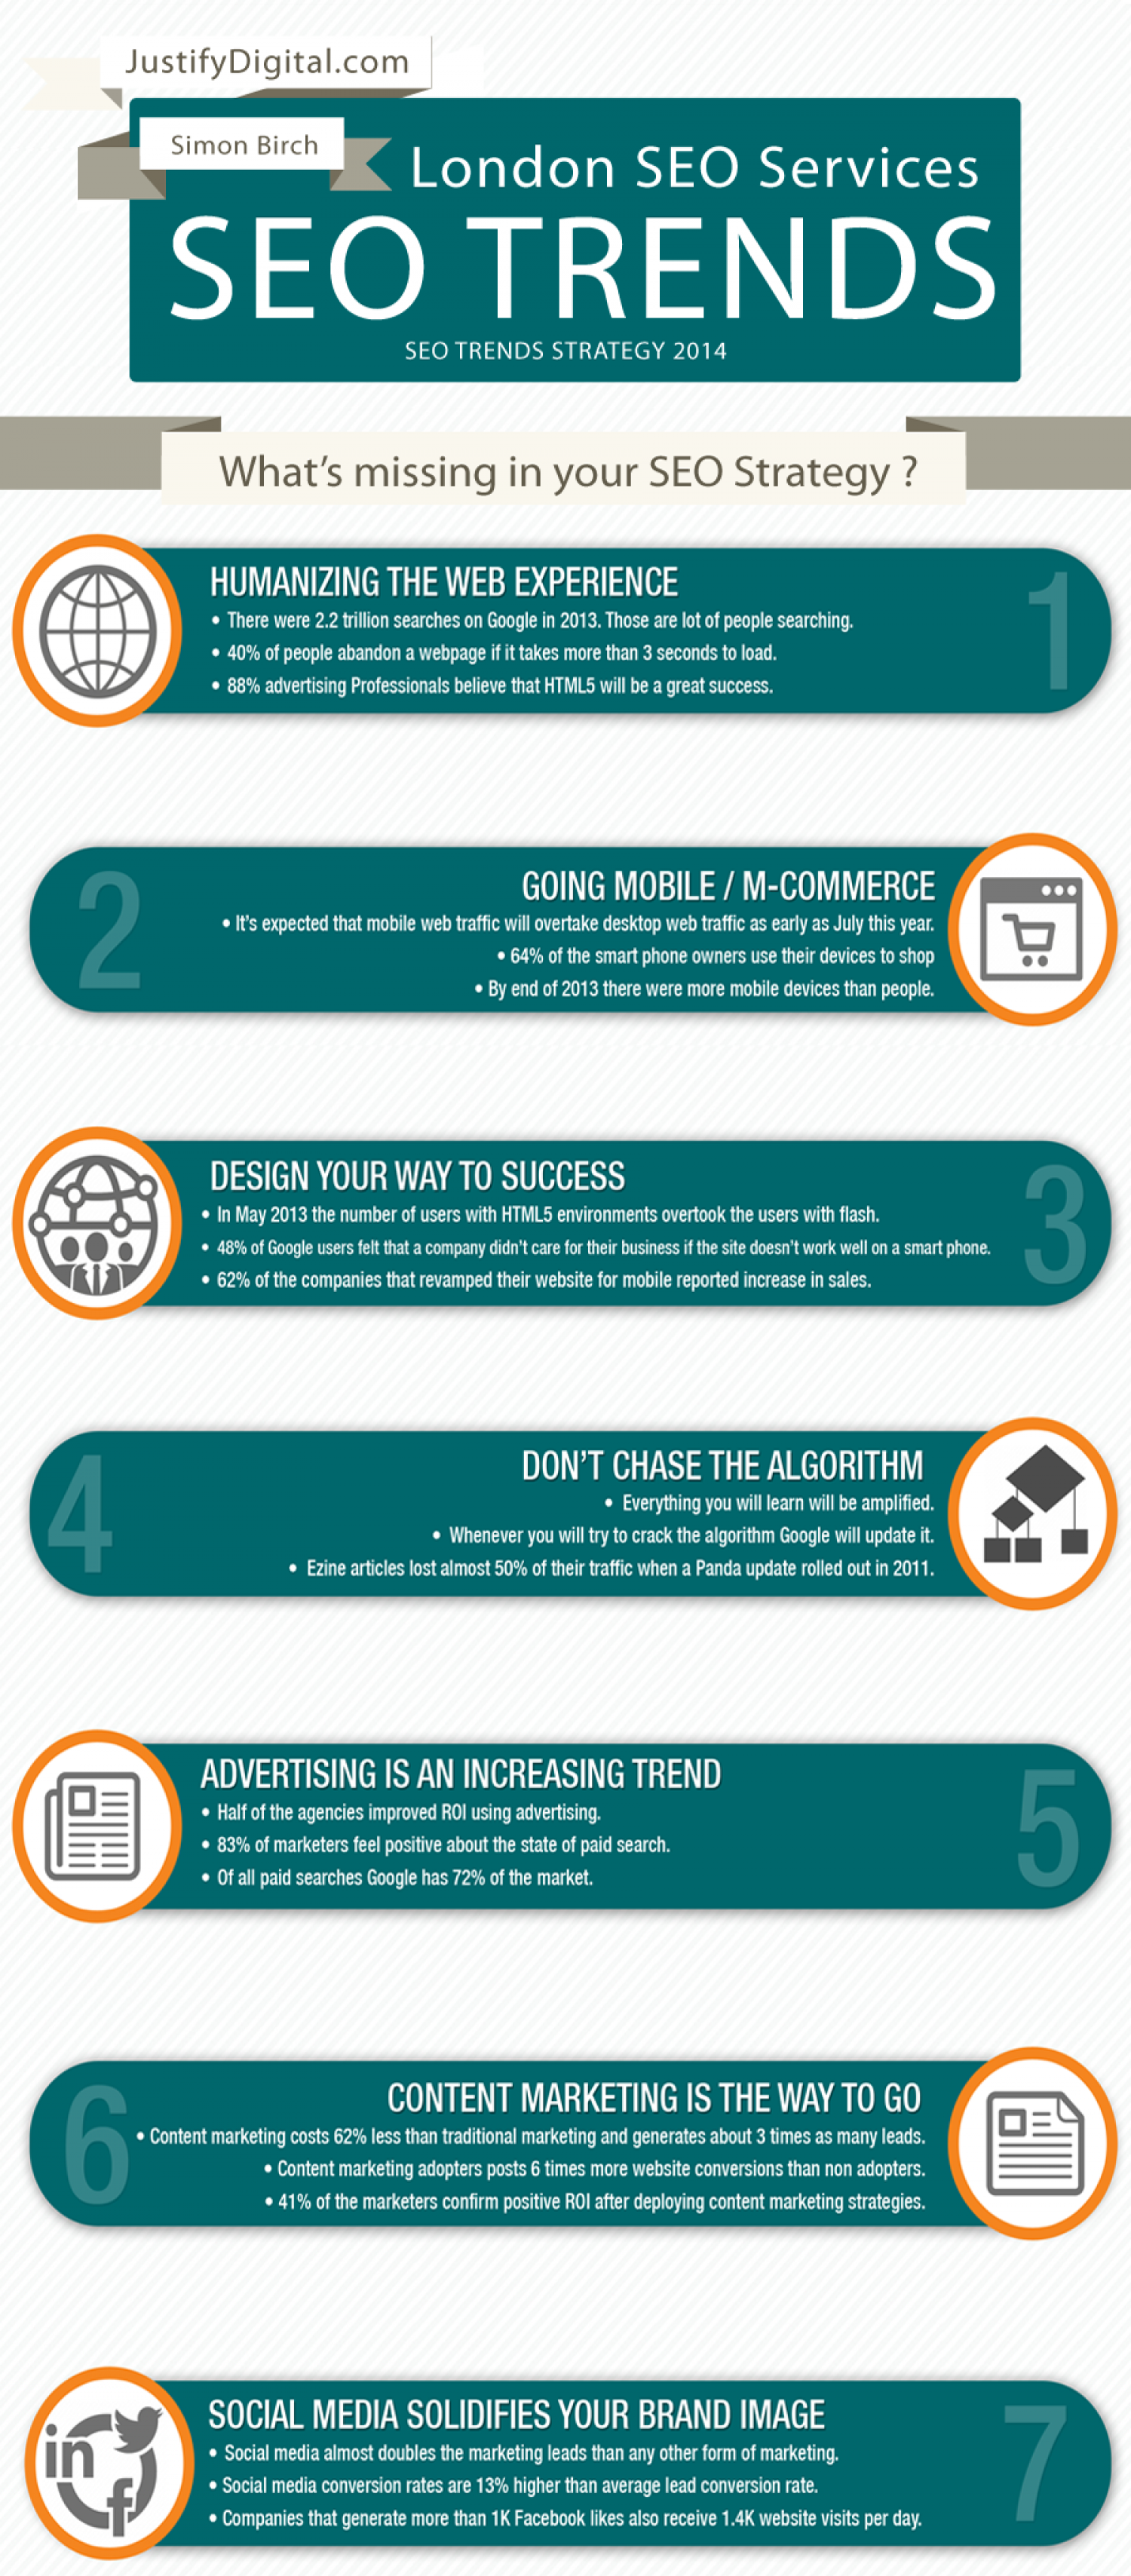 SEO Strategy 2014 Infographic